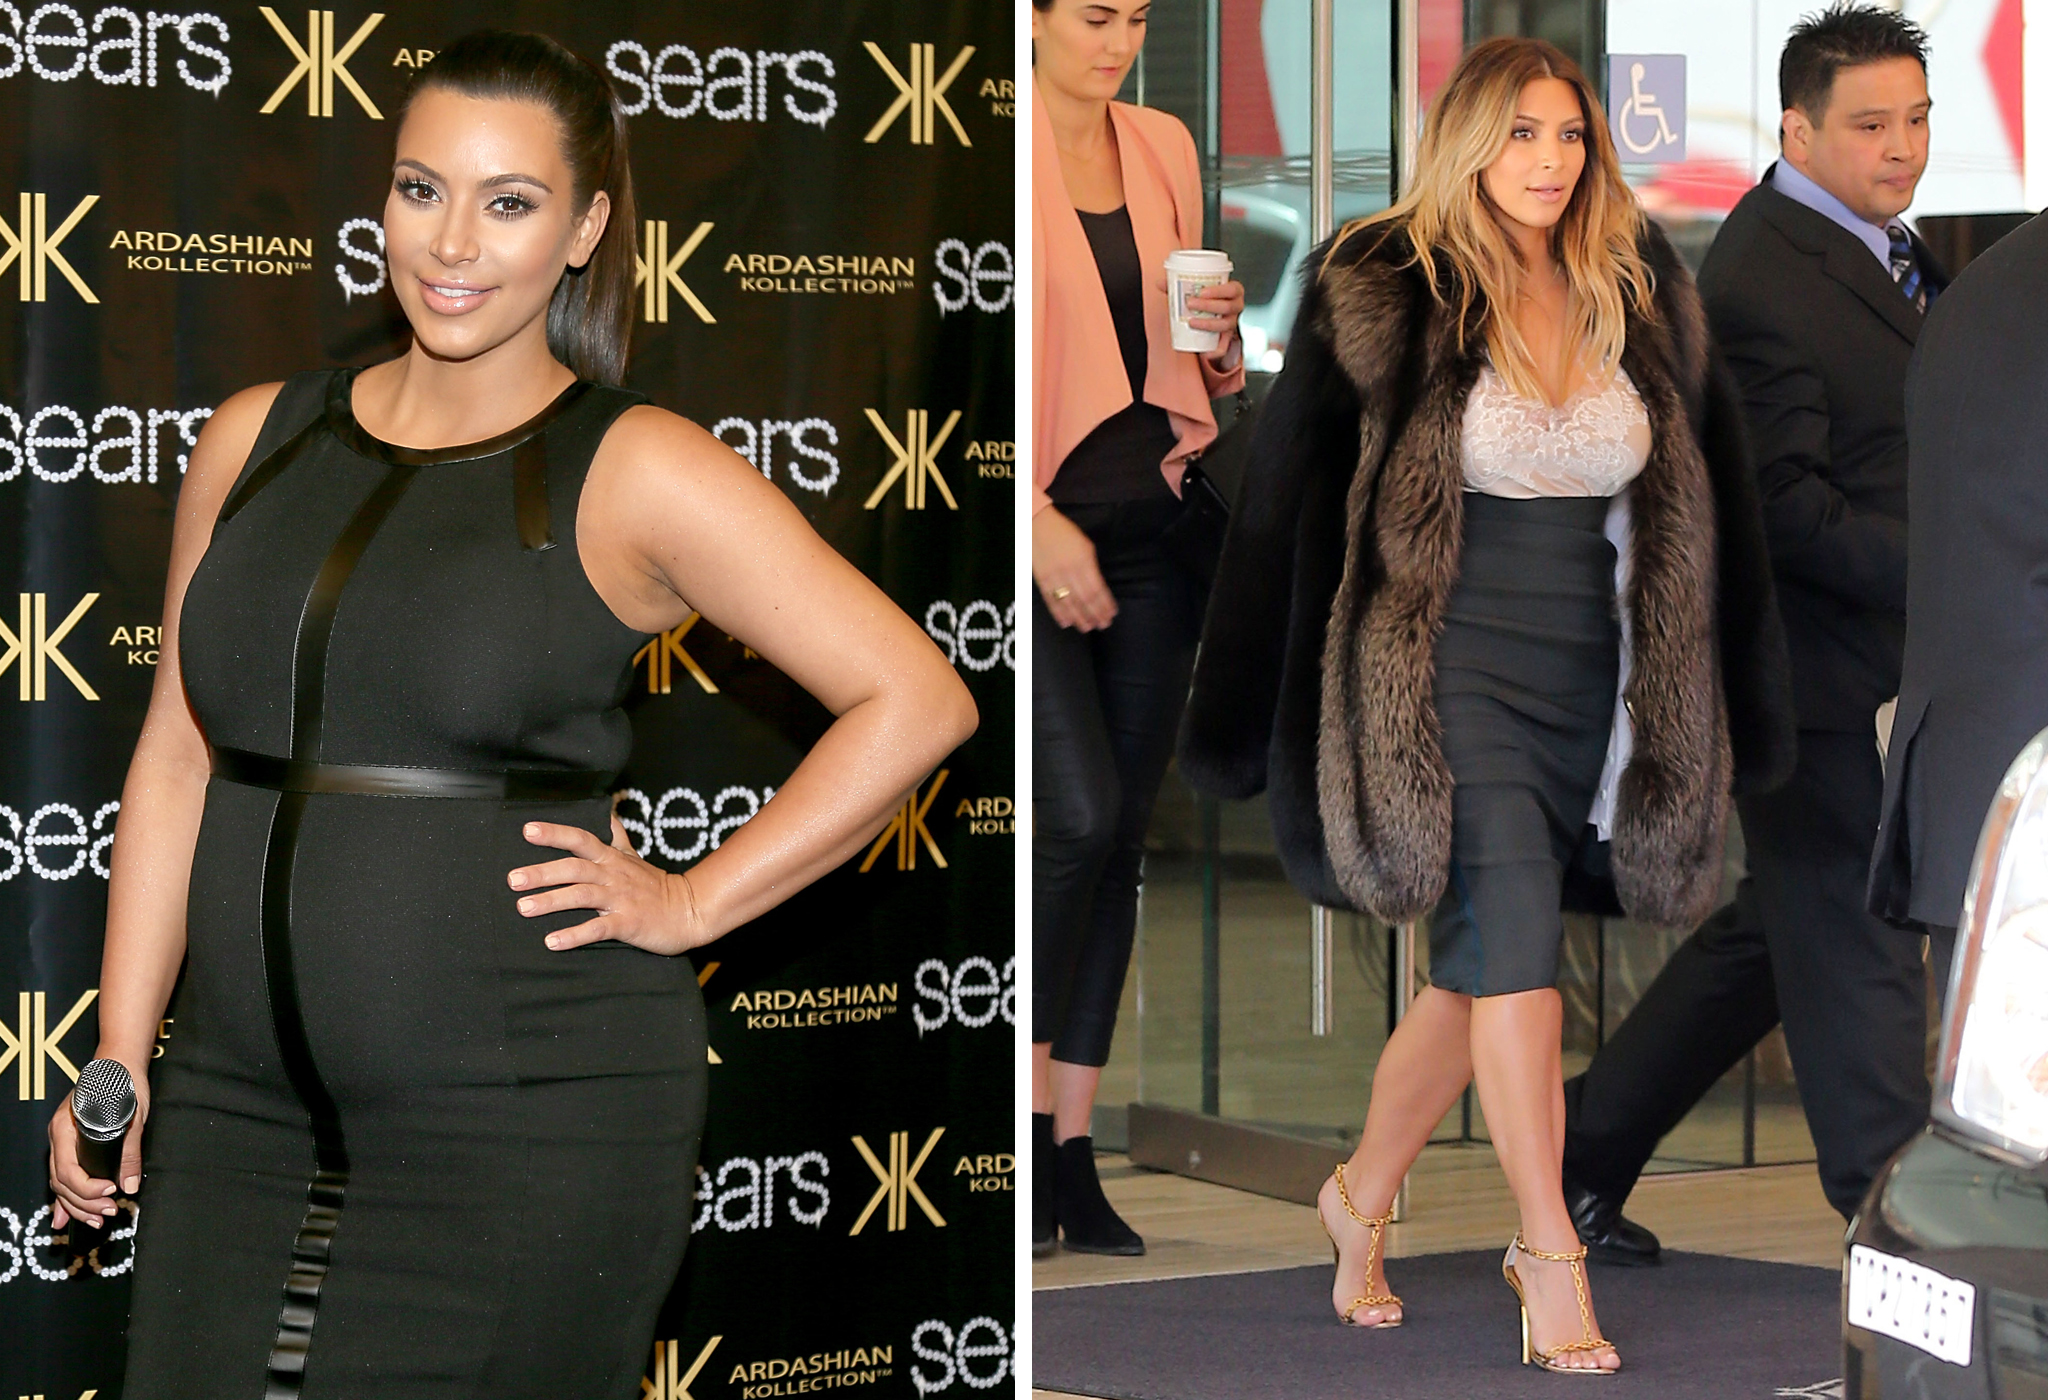 A pregnant Kim Kardashian / Kim stepping out post-engagement on Tuesday (FilmMagic/FameFlynet)